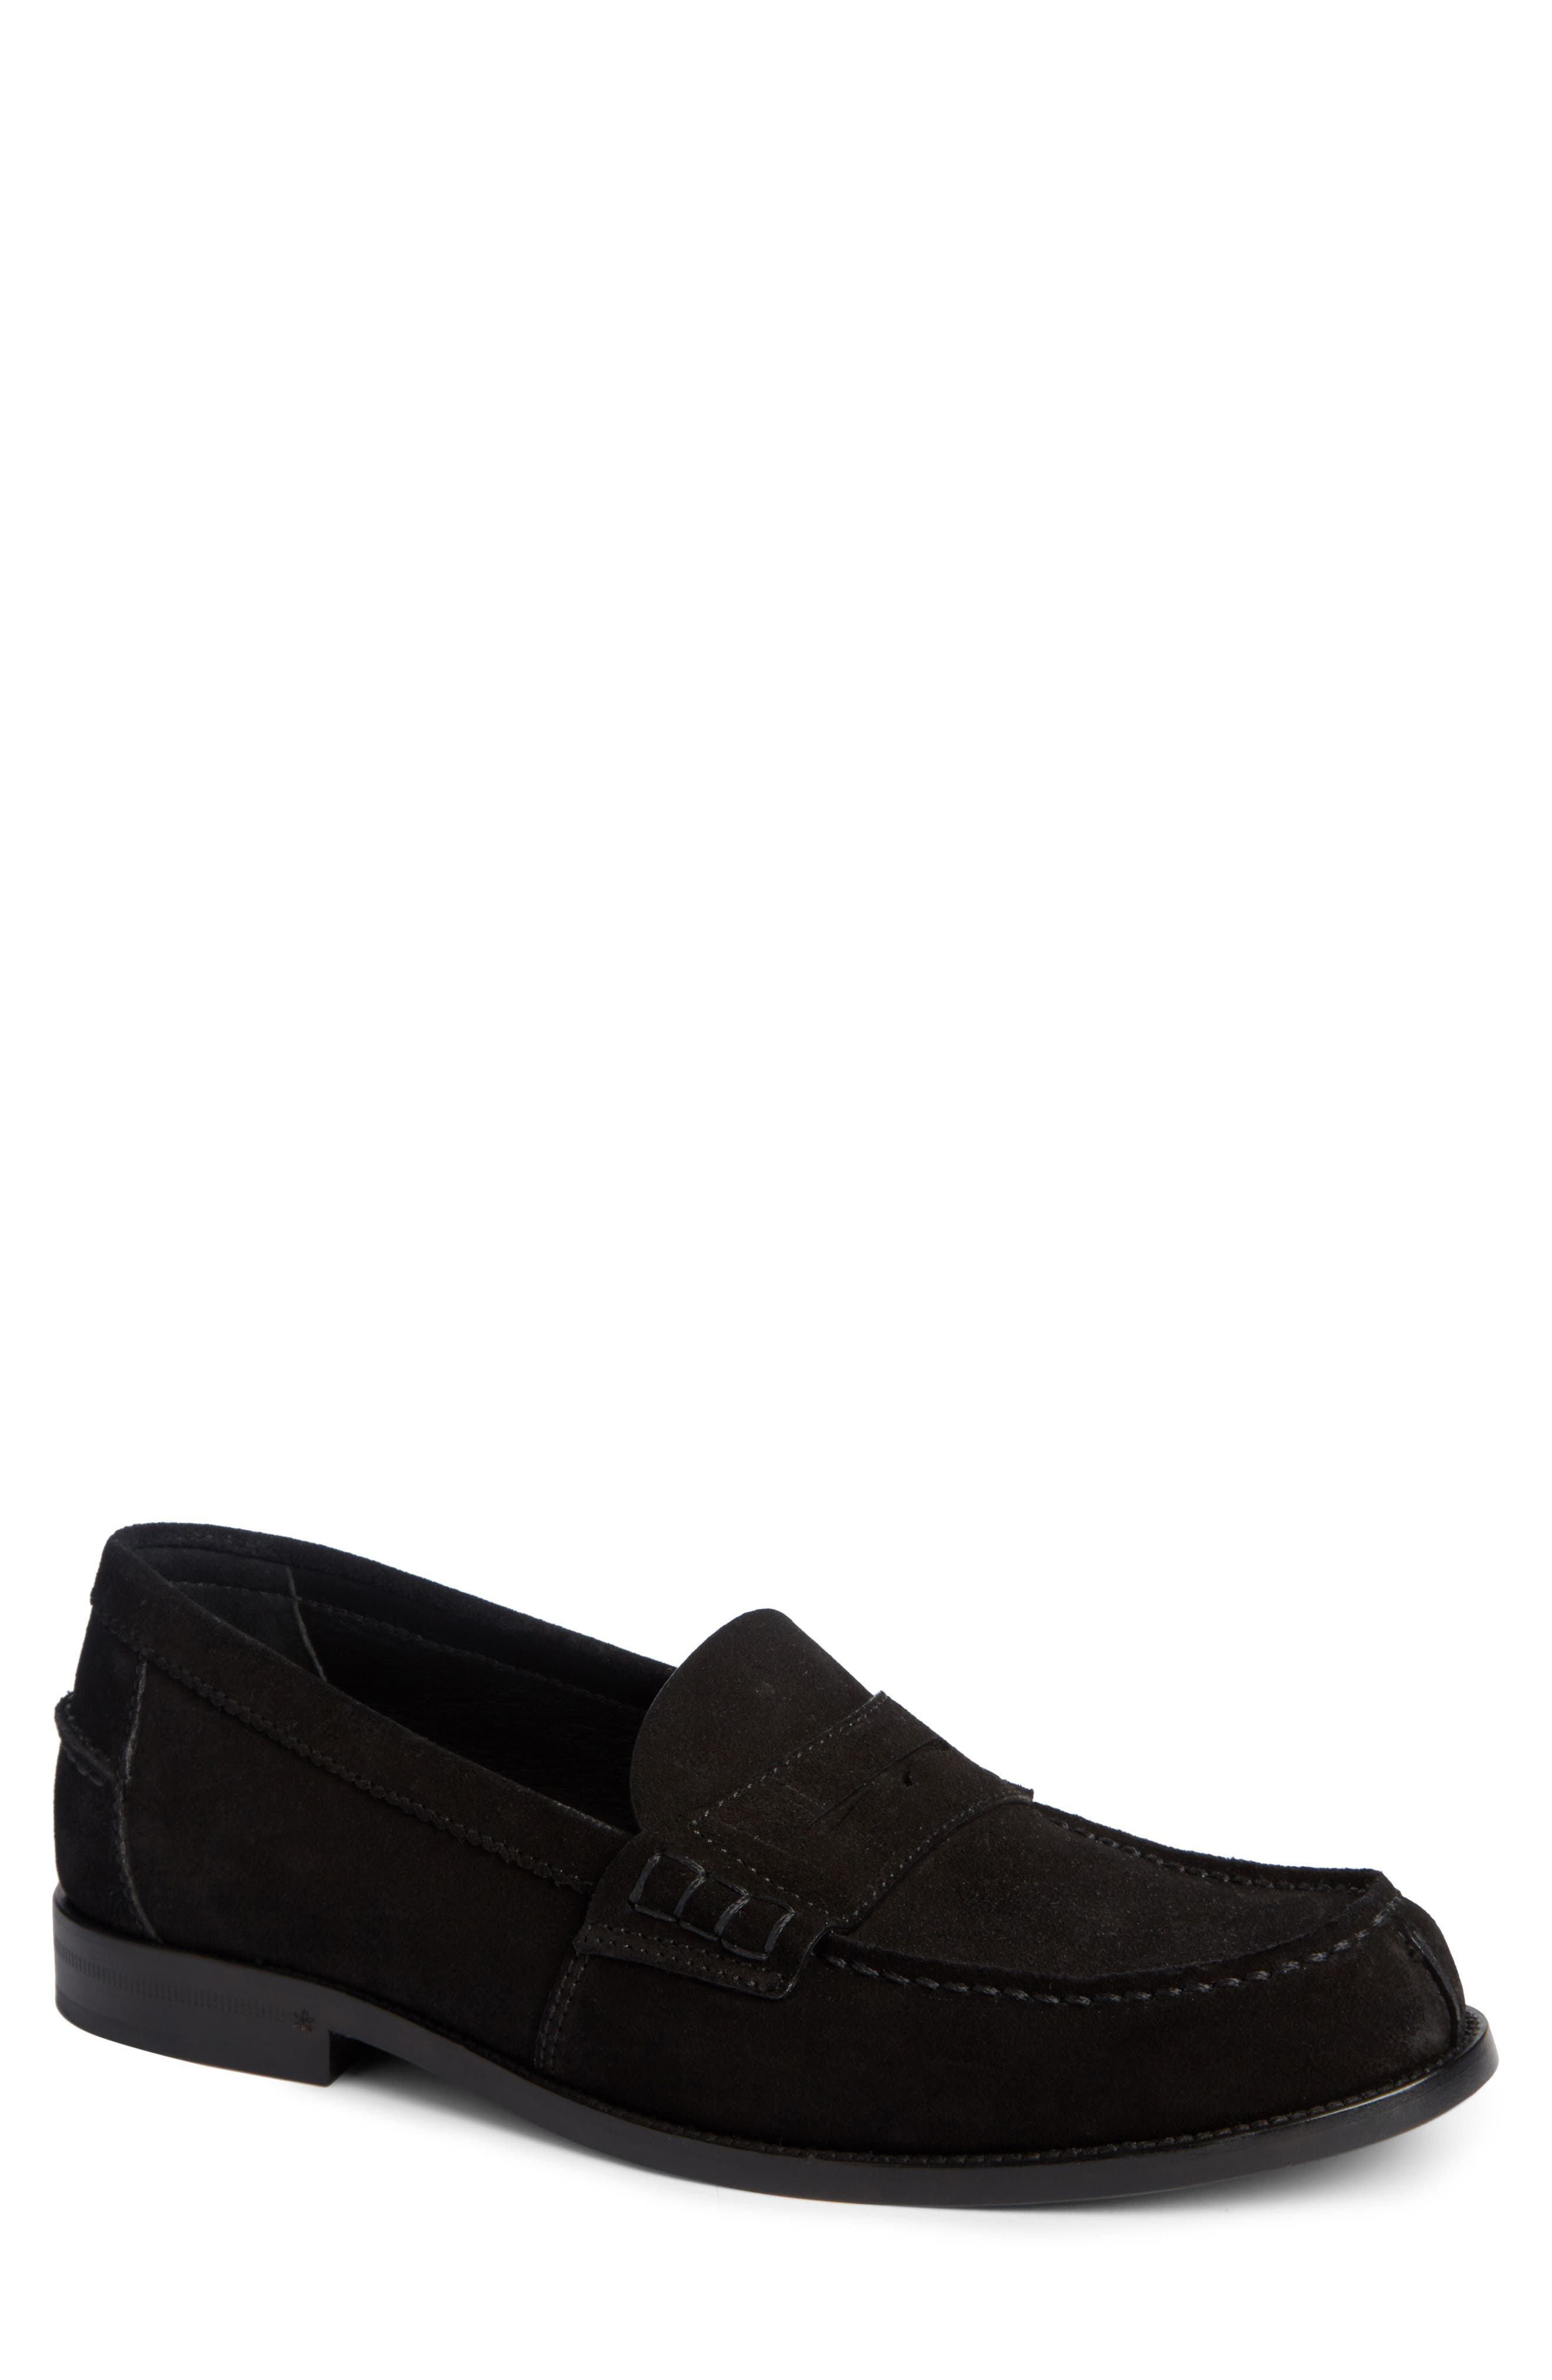 Penny Loafer,                             Main thumbnail 1, color,                             Black Suede